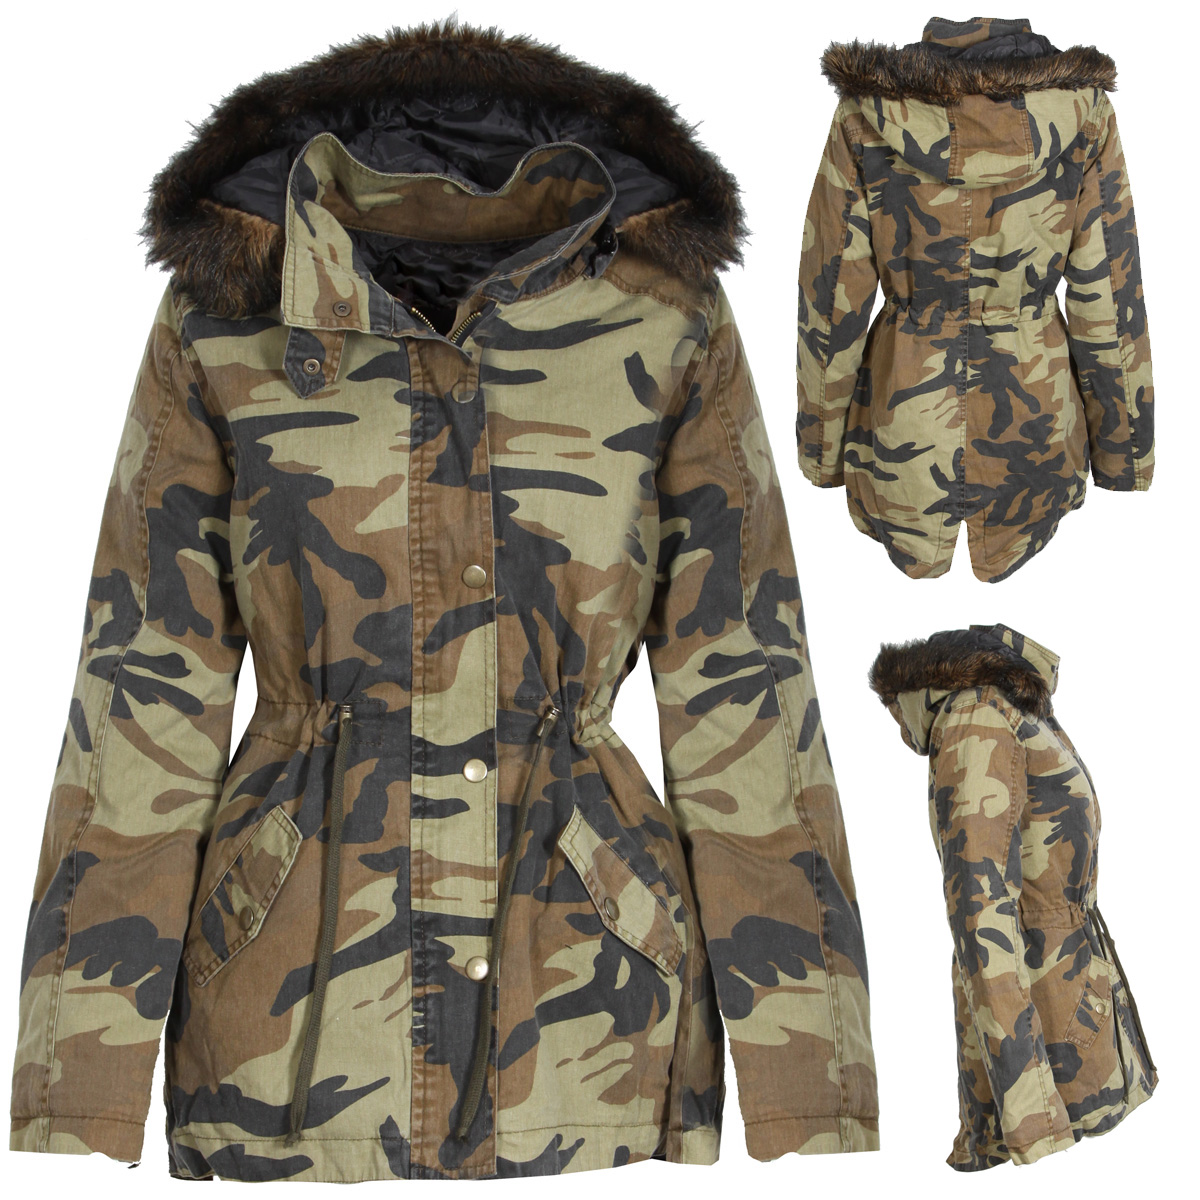 9120c8f7bdb6f Image is loading NEW-WOMENS-CAMO-CAMOUFLAGE-PARKA-WINTER-COAT-JACKET-